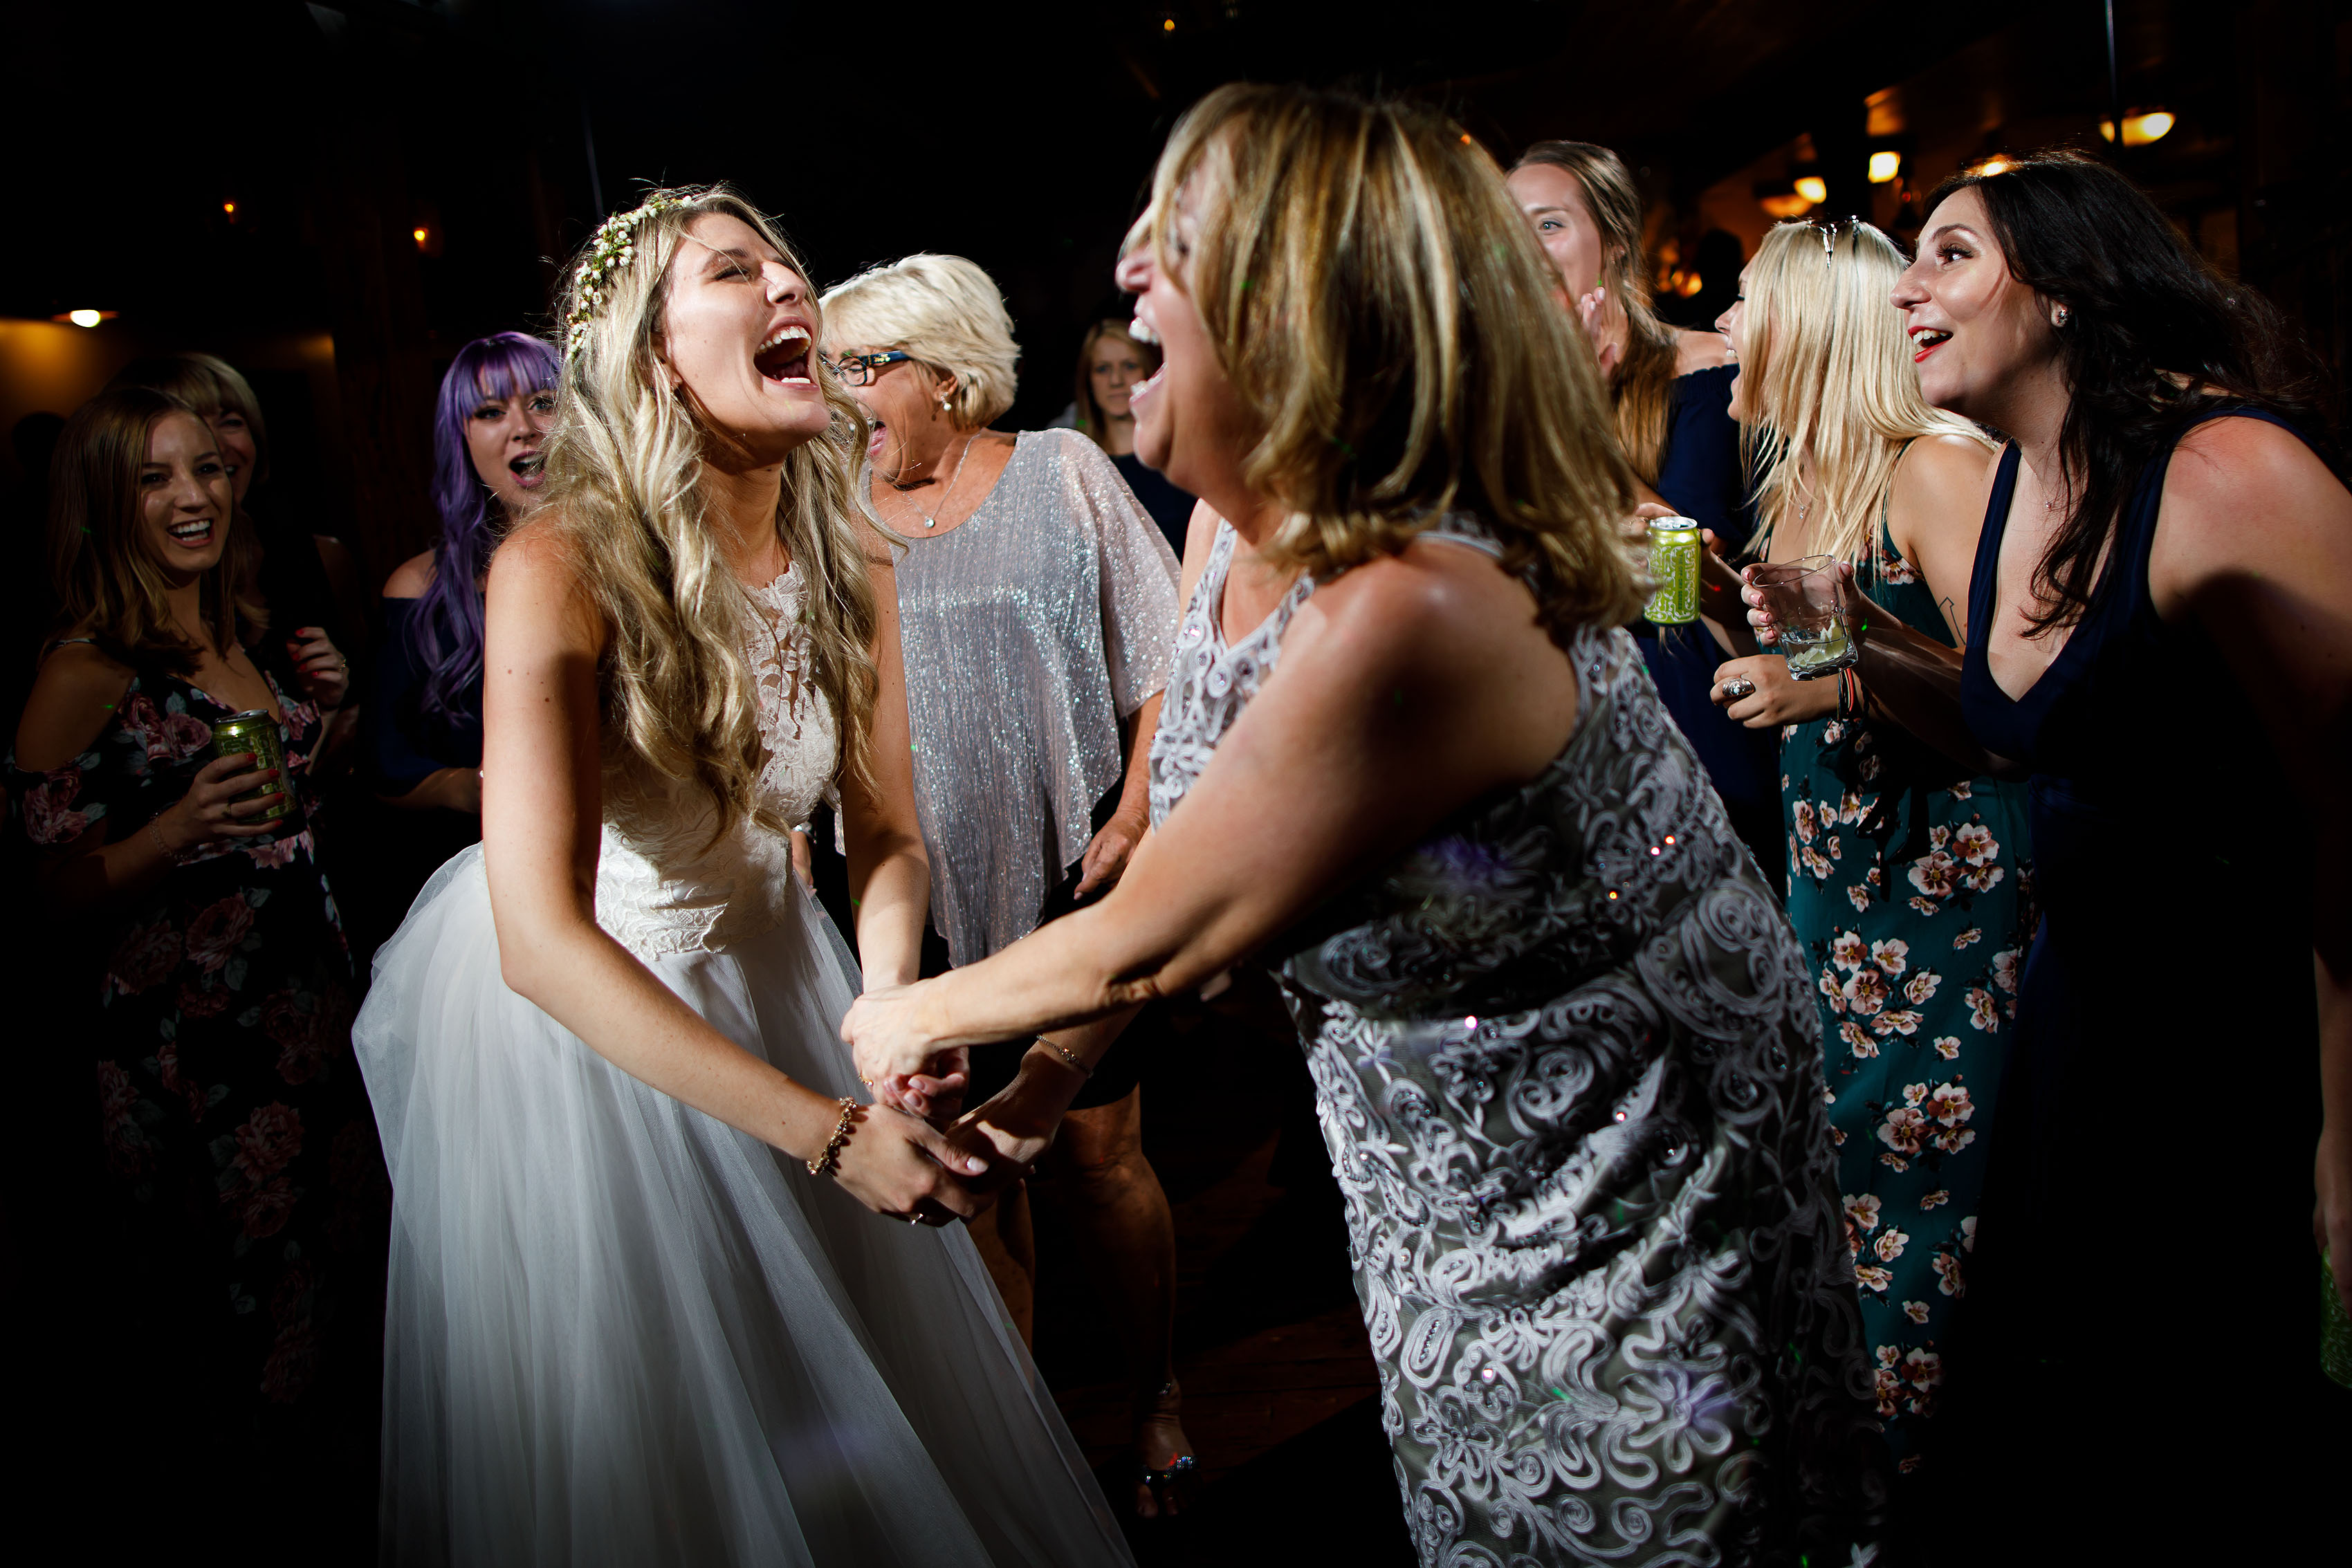 Deer Creek Valley Ranch Wedding reception